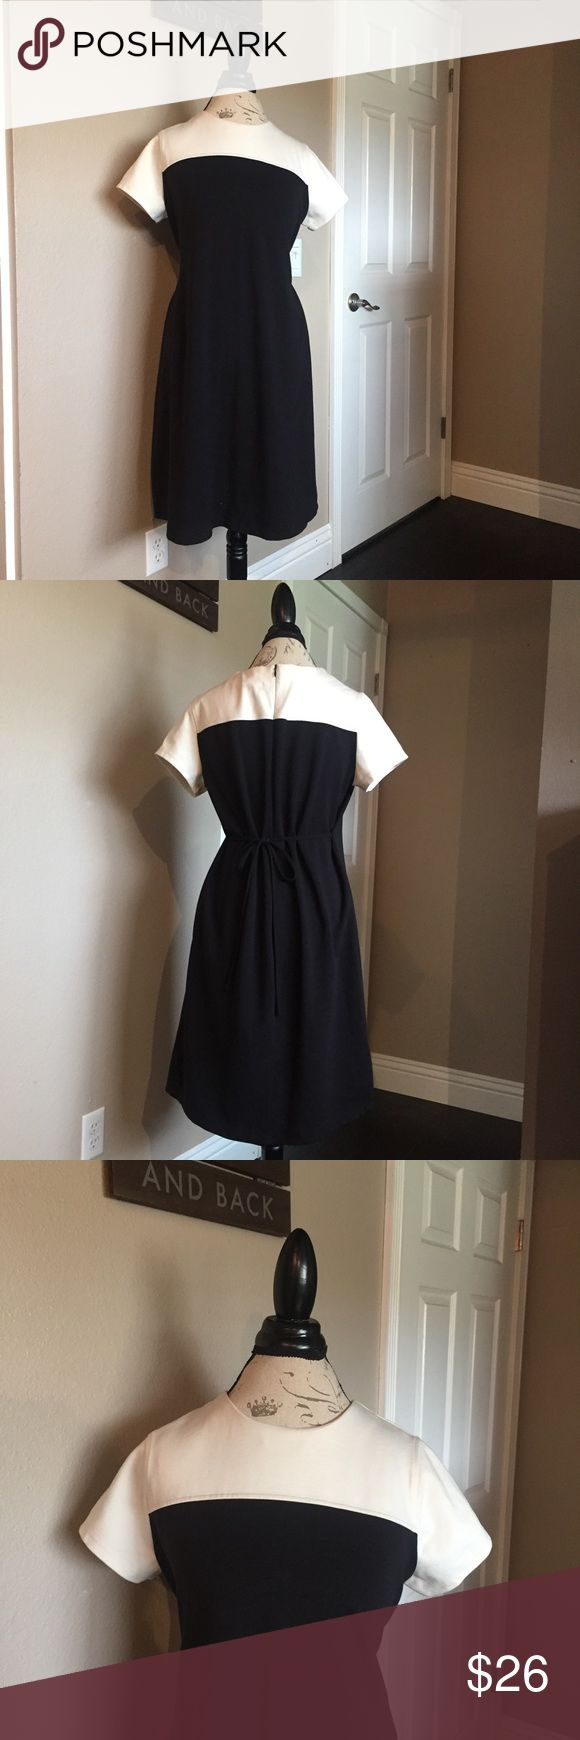 Motherhood maternity Dress size large Motherhood maternity black and white dress in great condition. Dress ties in the back. Dress can be used for work or for a night out. Motherhood Maternity Dresses